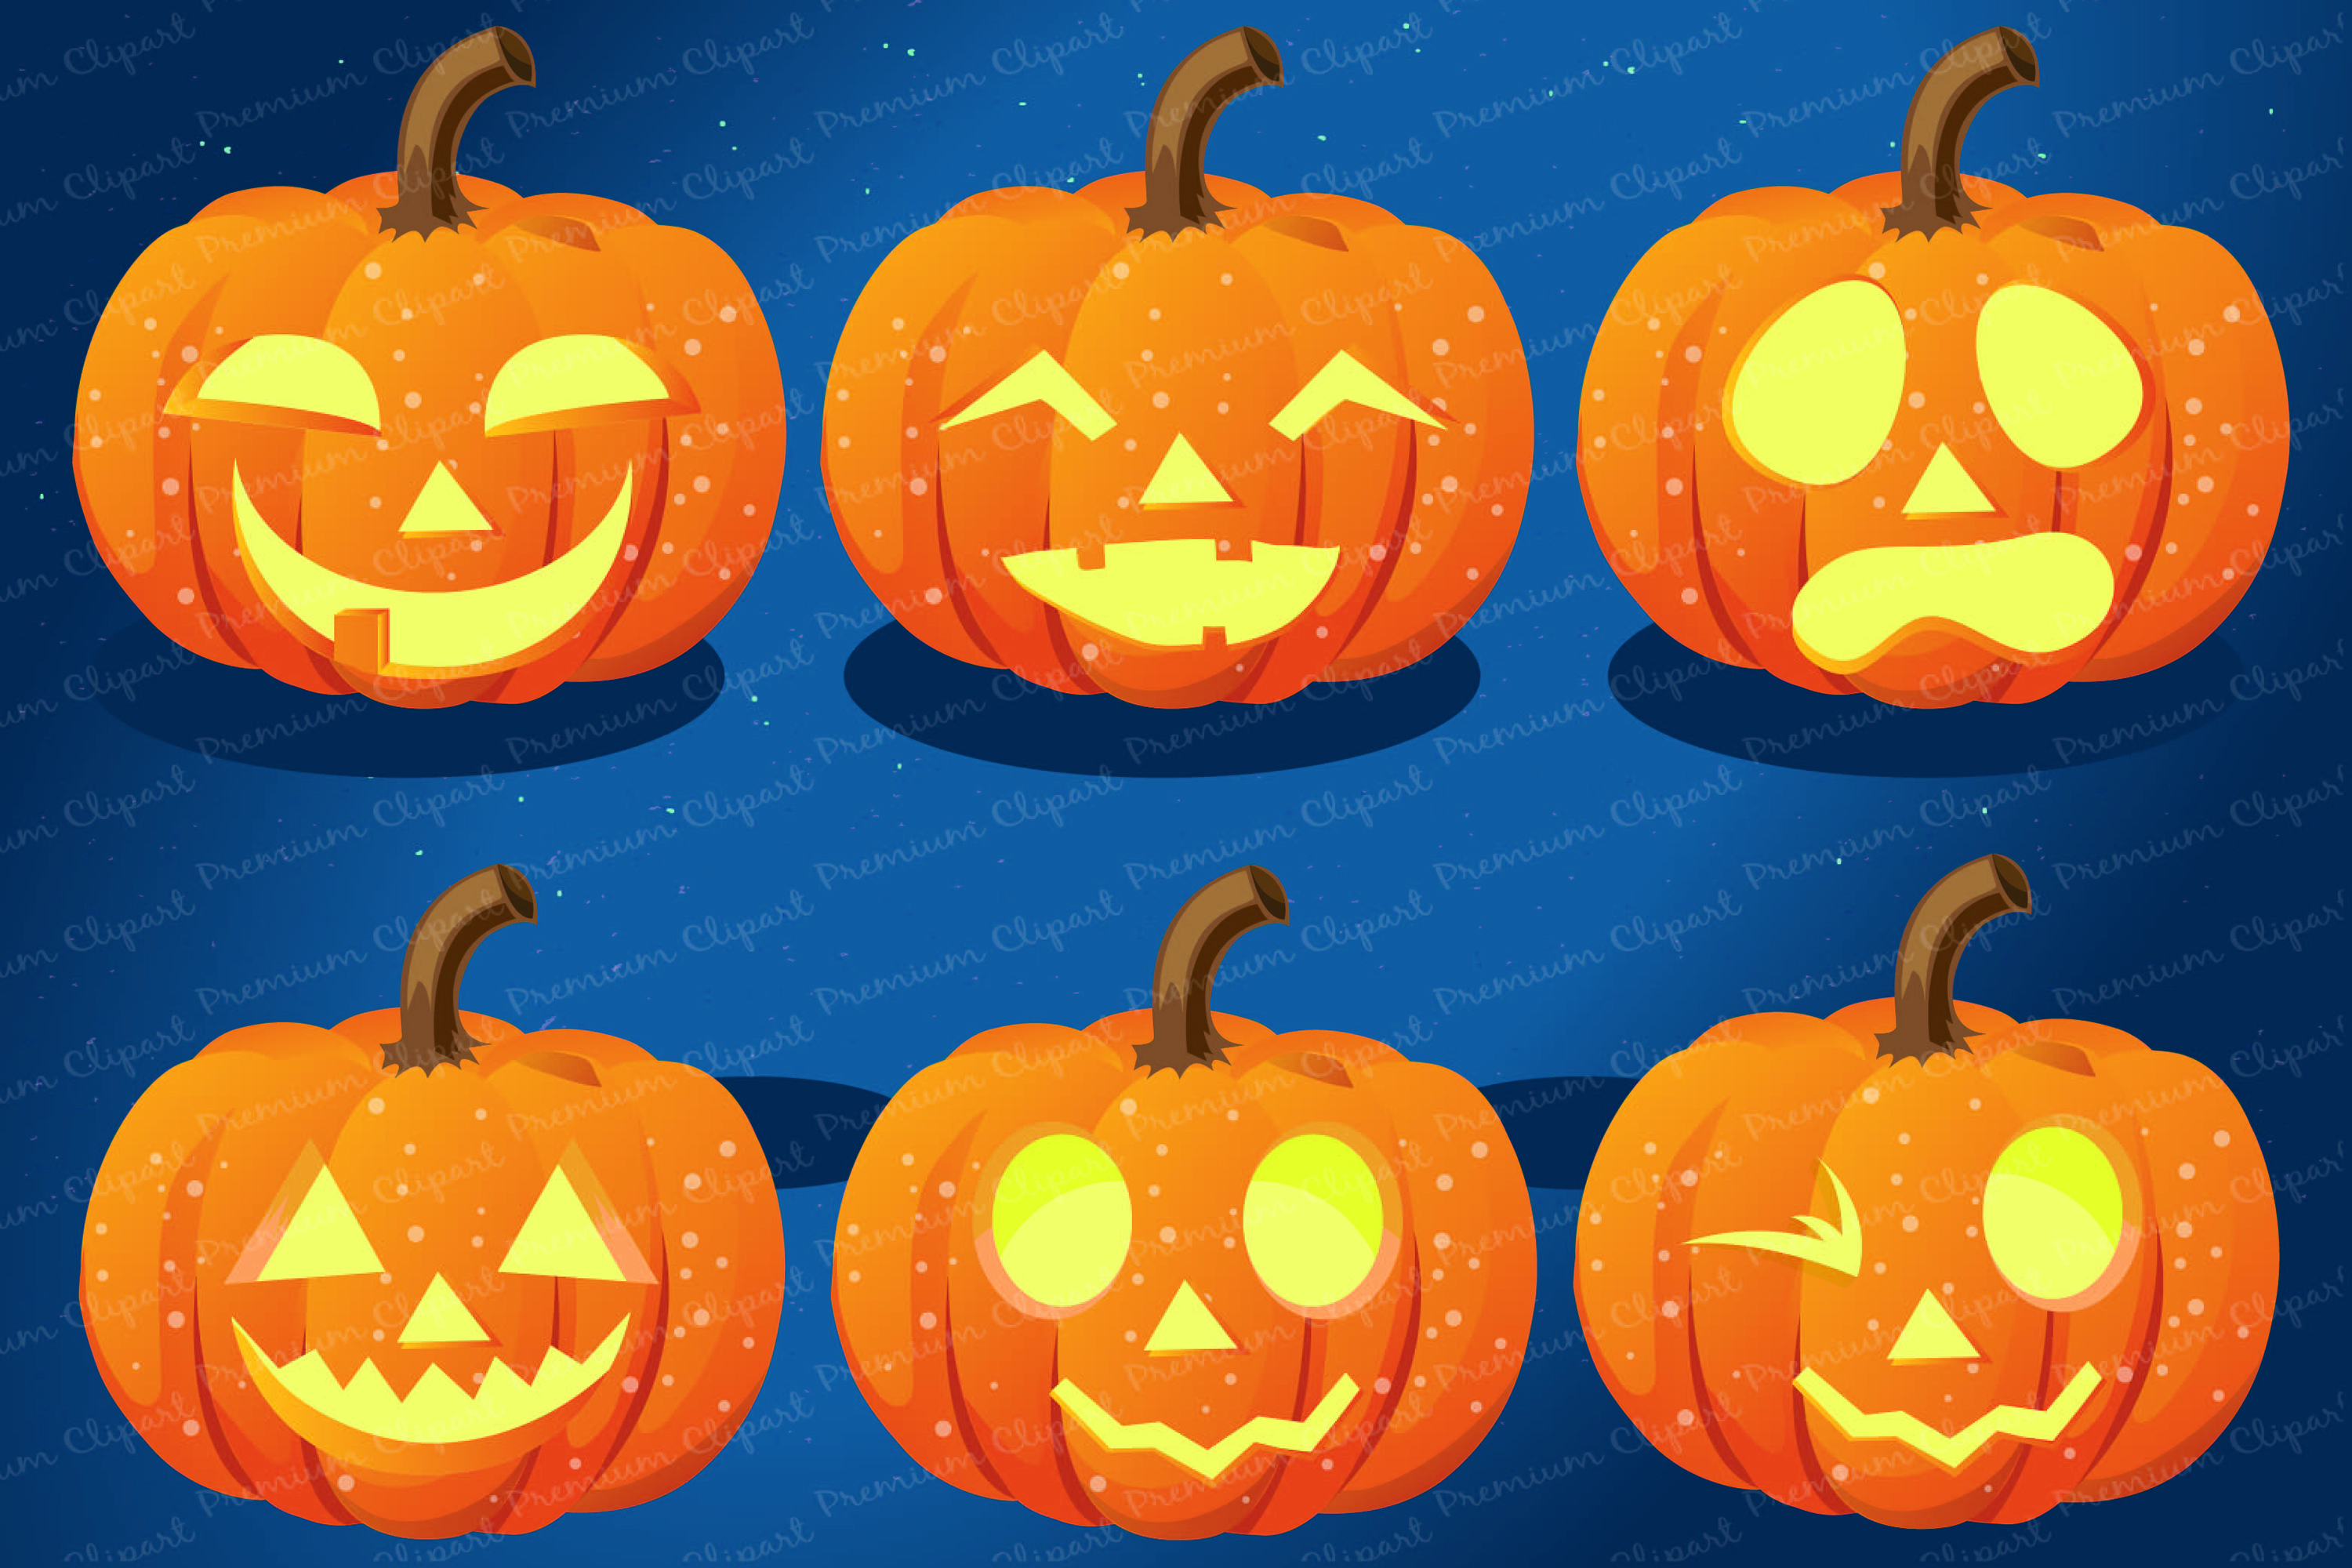 Halloween bundle, Halloween illustrations, Halloween pumpkin example image 7